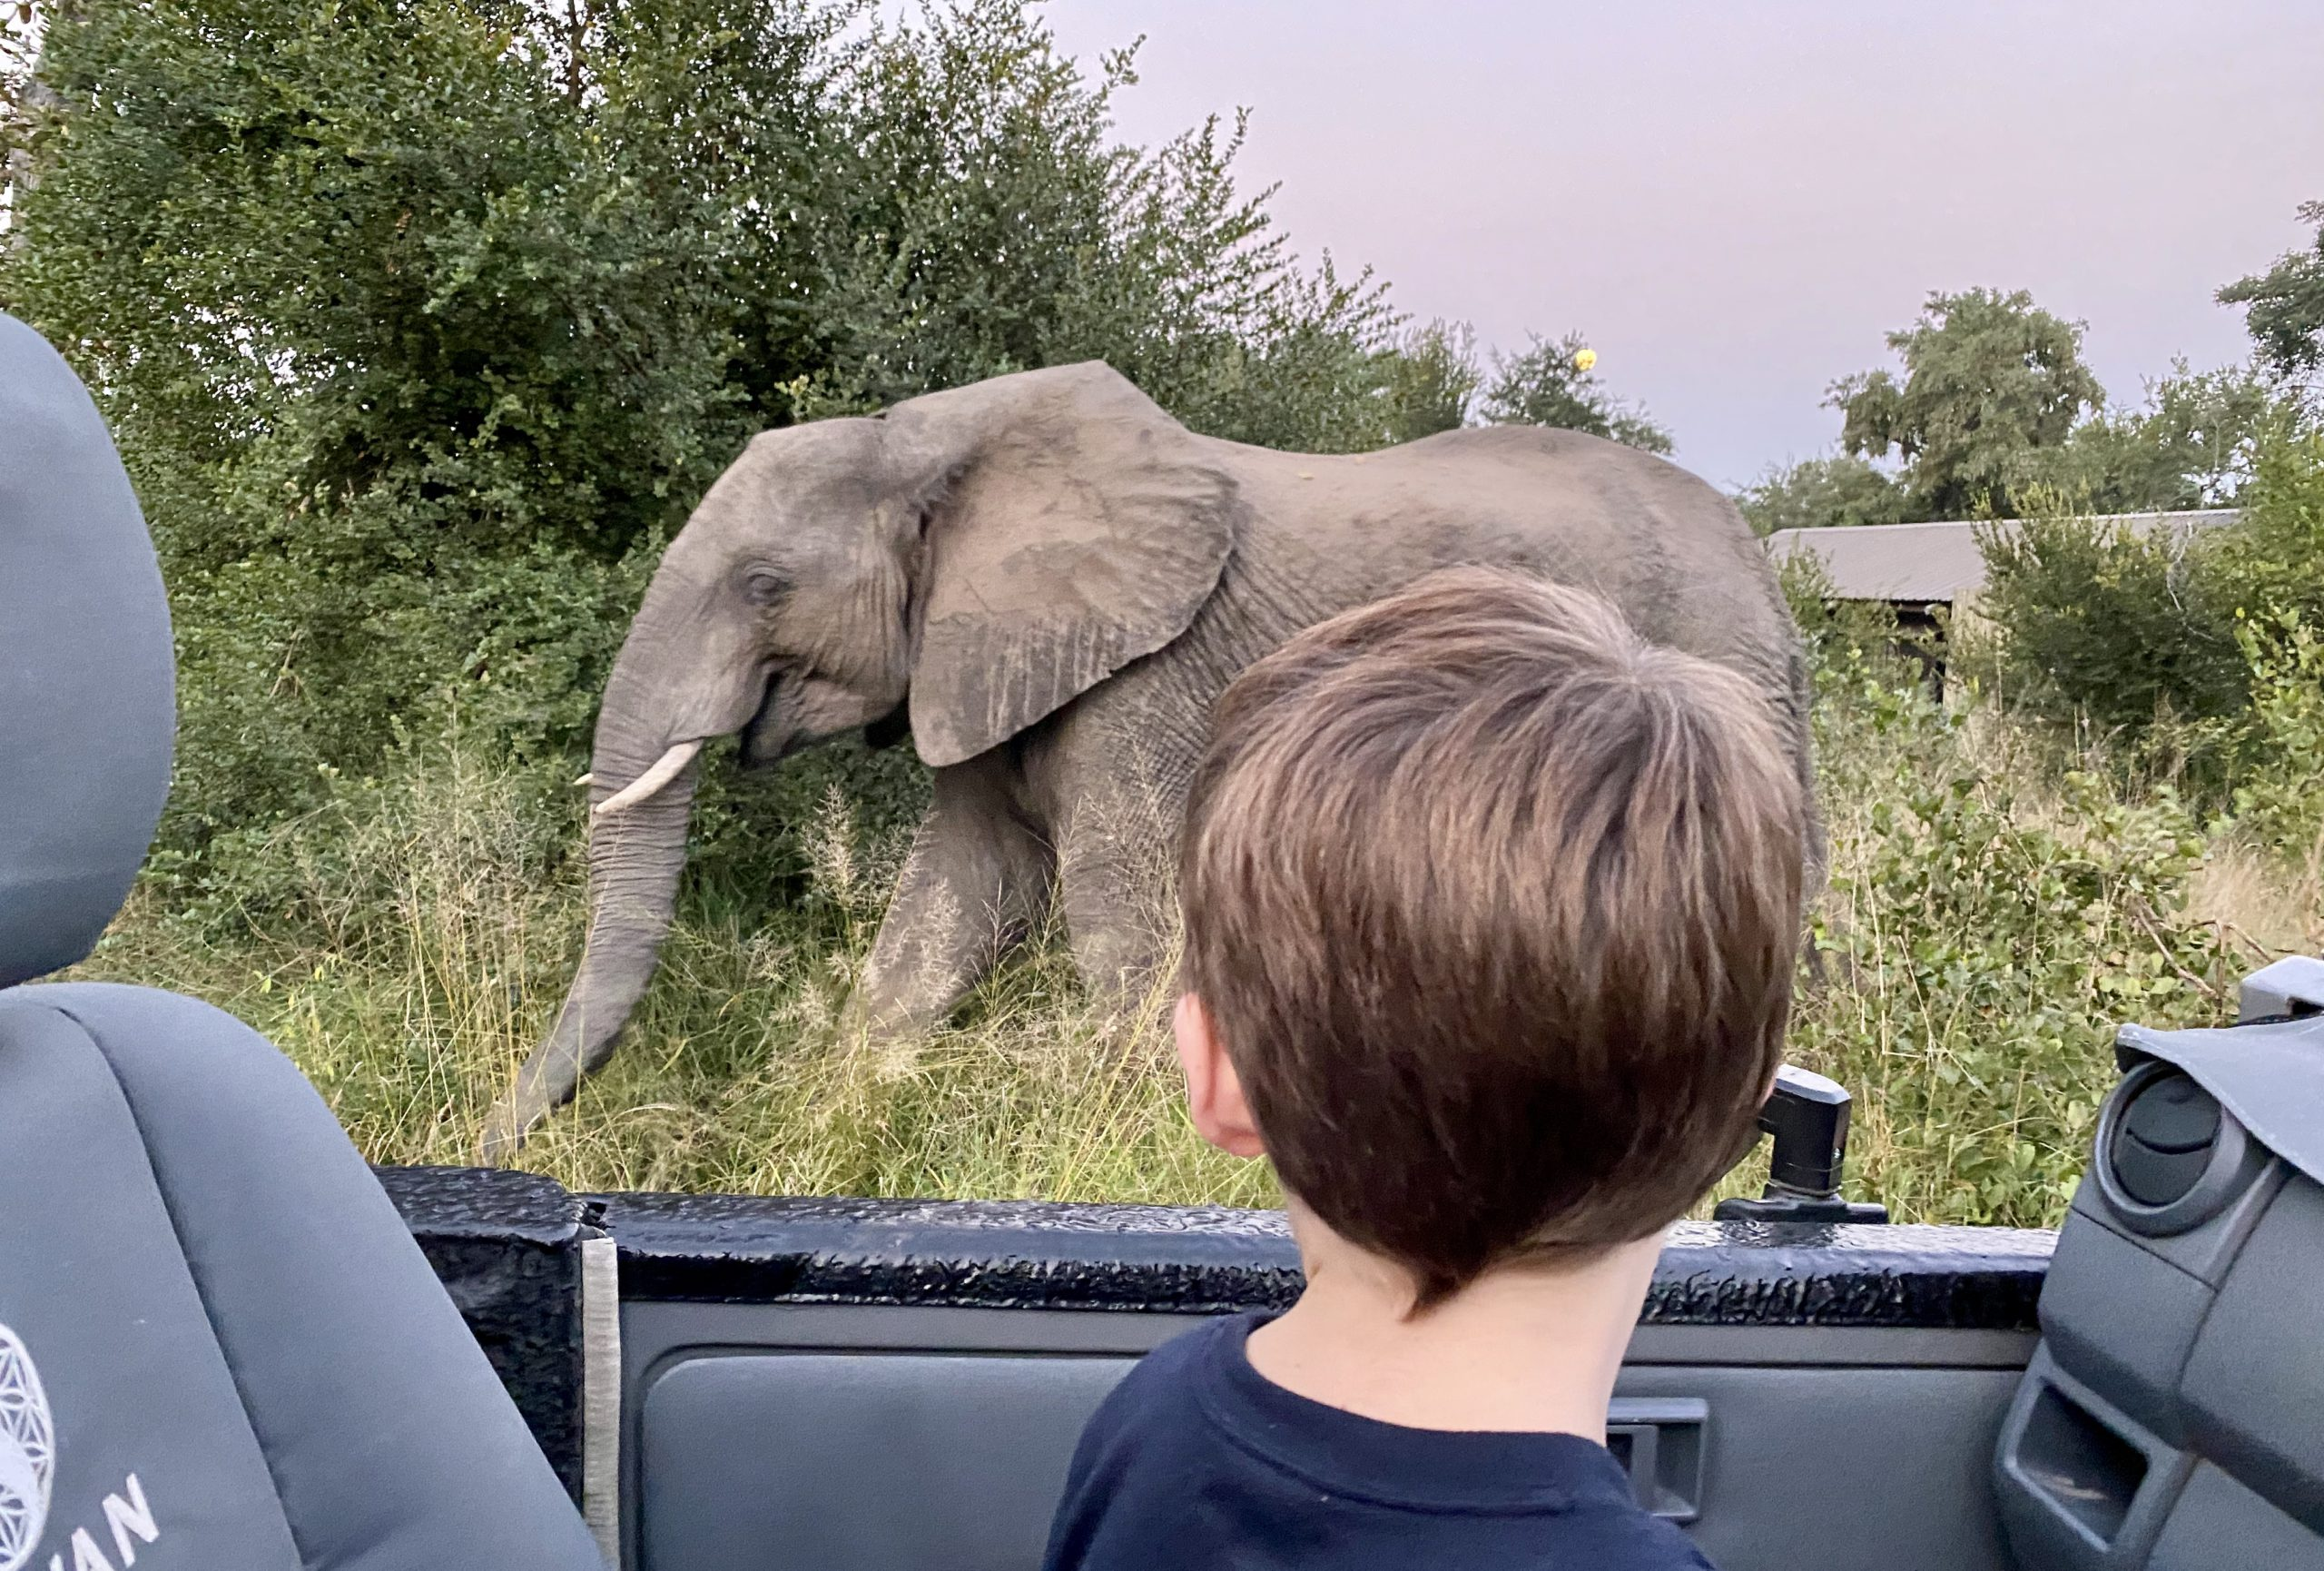 Michael admitting an elephant at Silvan while under lockdown